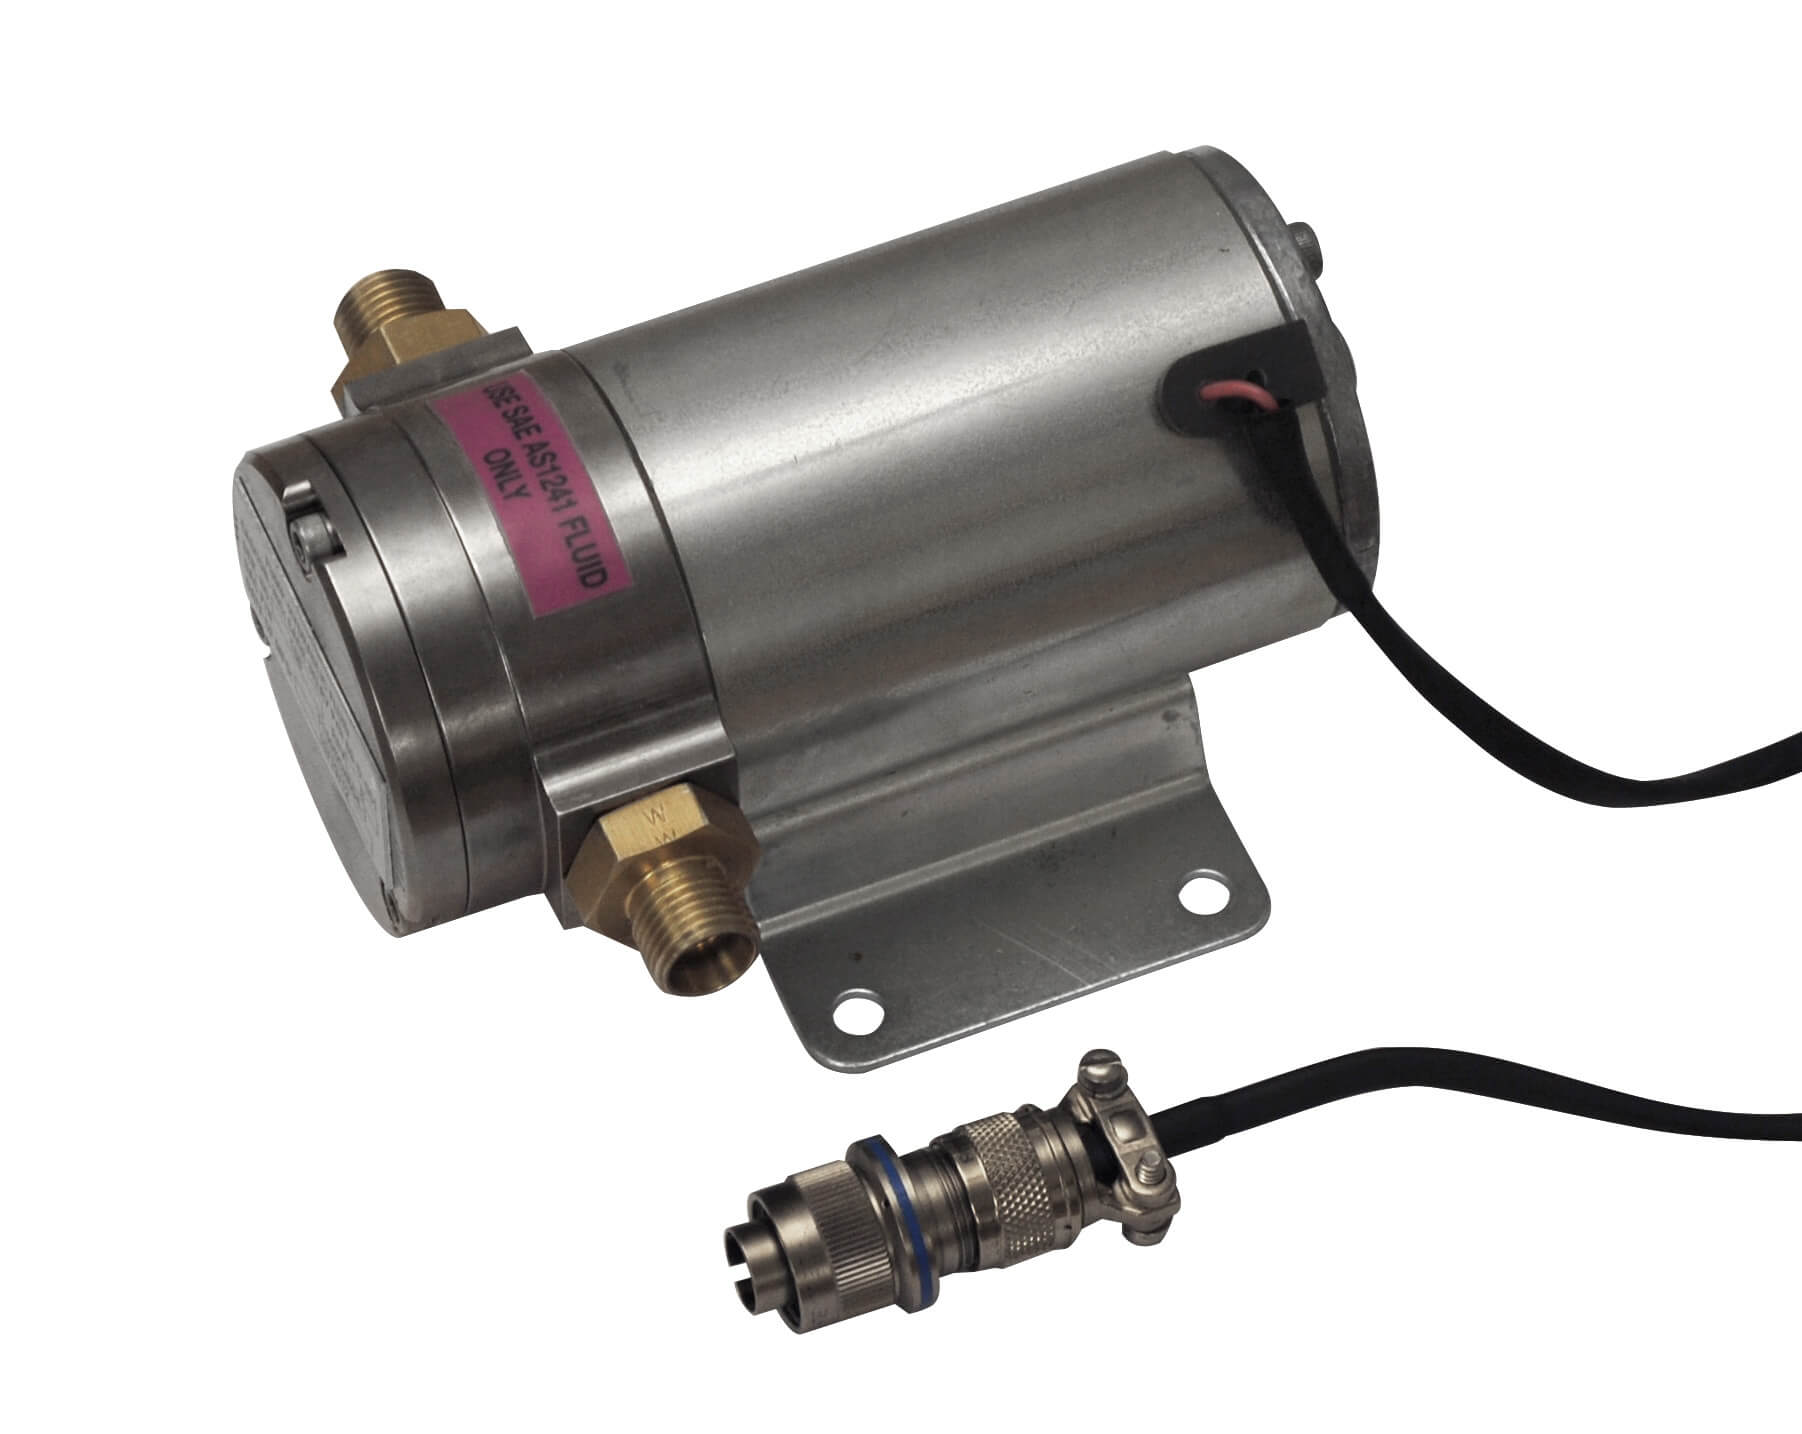 hydraulic transfer pumps and Fuel Metering Pumps, Made in the USA